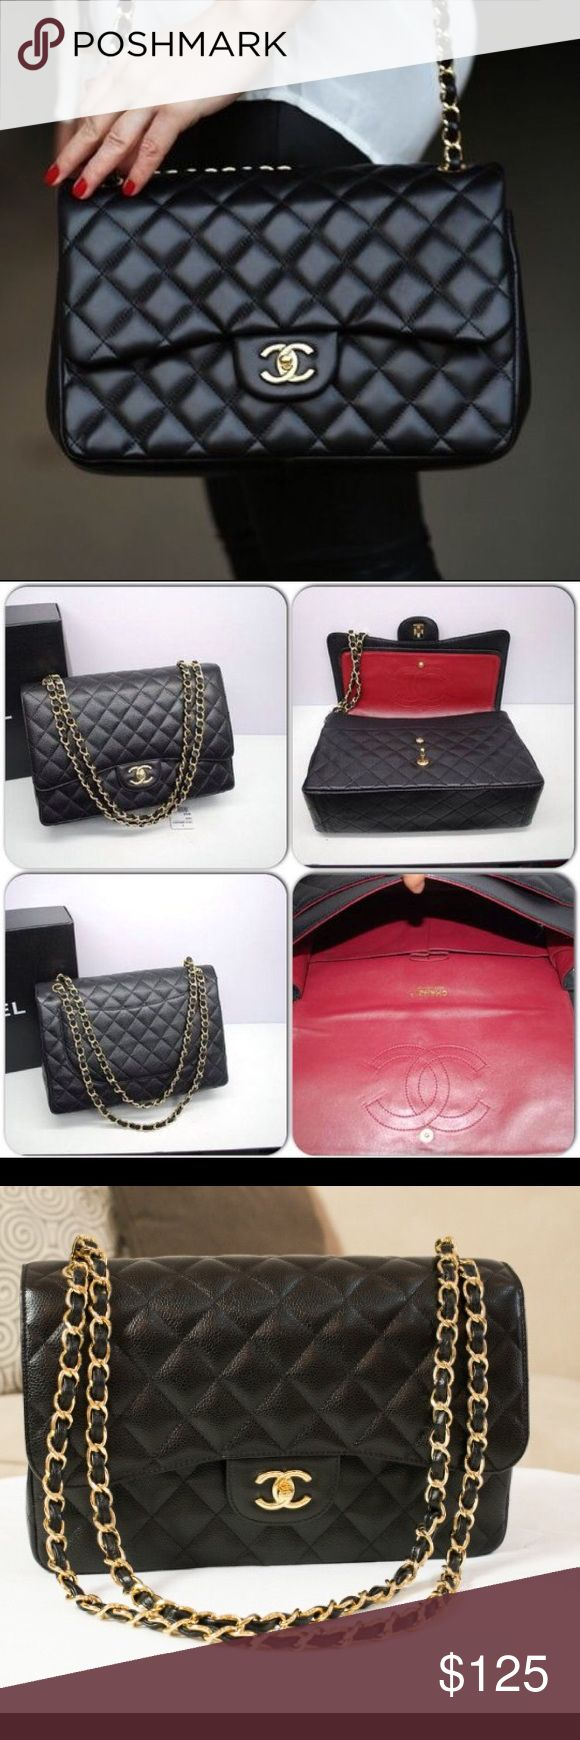 Chanel Double Flap Classic Jumbo black quilted Chanel purse. Absolutely amazing classic purse! Price reflects authenticity. Super soft faux leather. A fashion lover's must-have! Phenomenal quality :) I LOVE this purse, just don't need it anymore. Will update shortly with exact measurements. Ships from Louisiana. CHANEL Bags Shoulder Bags